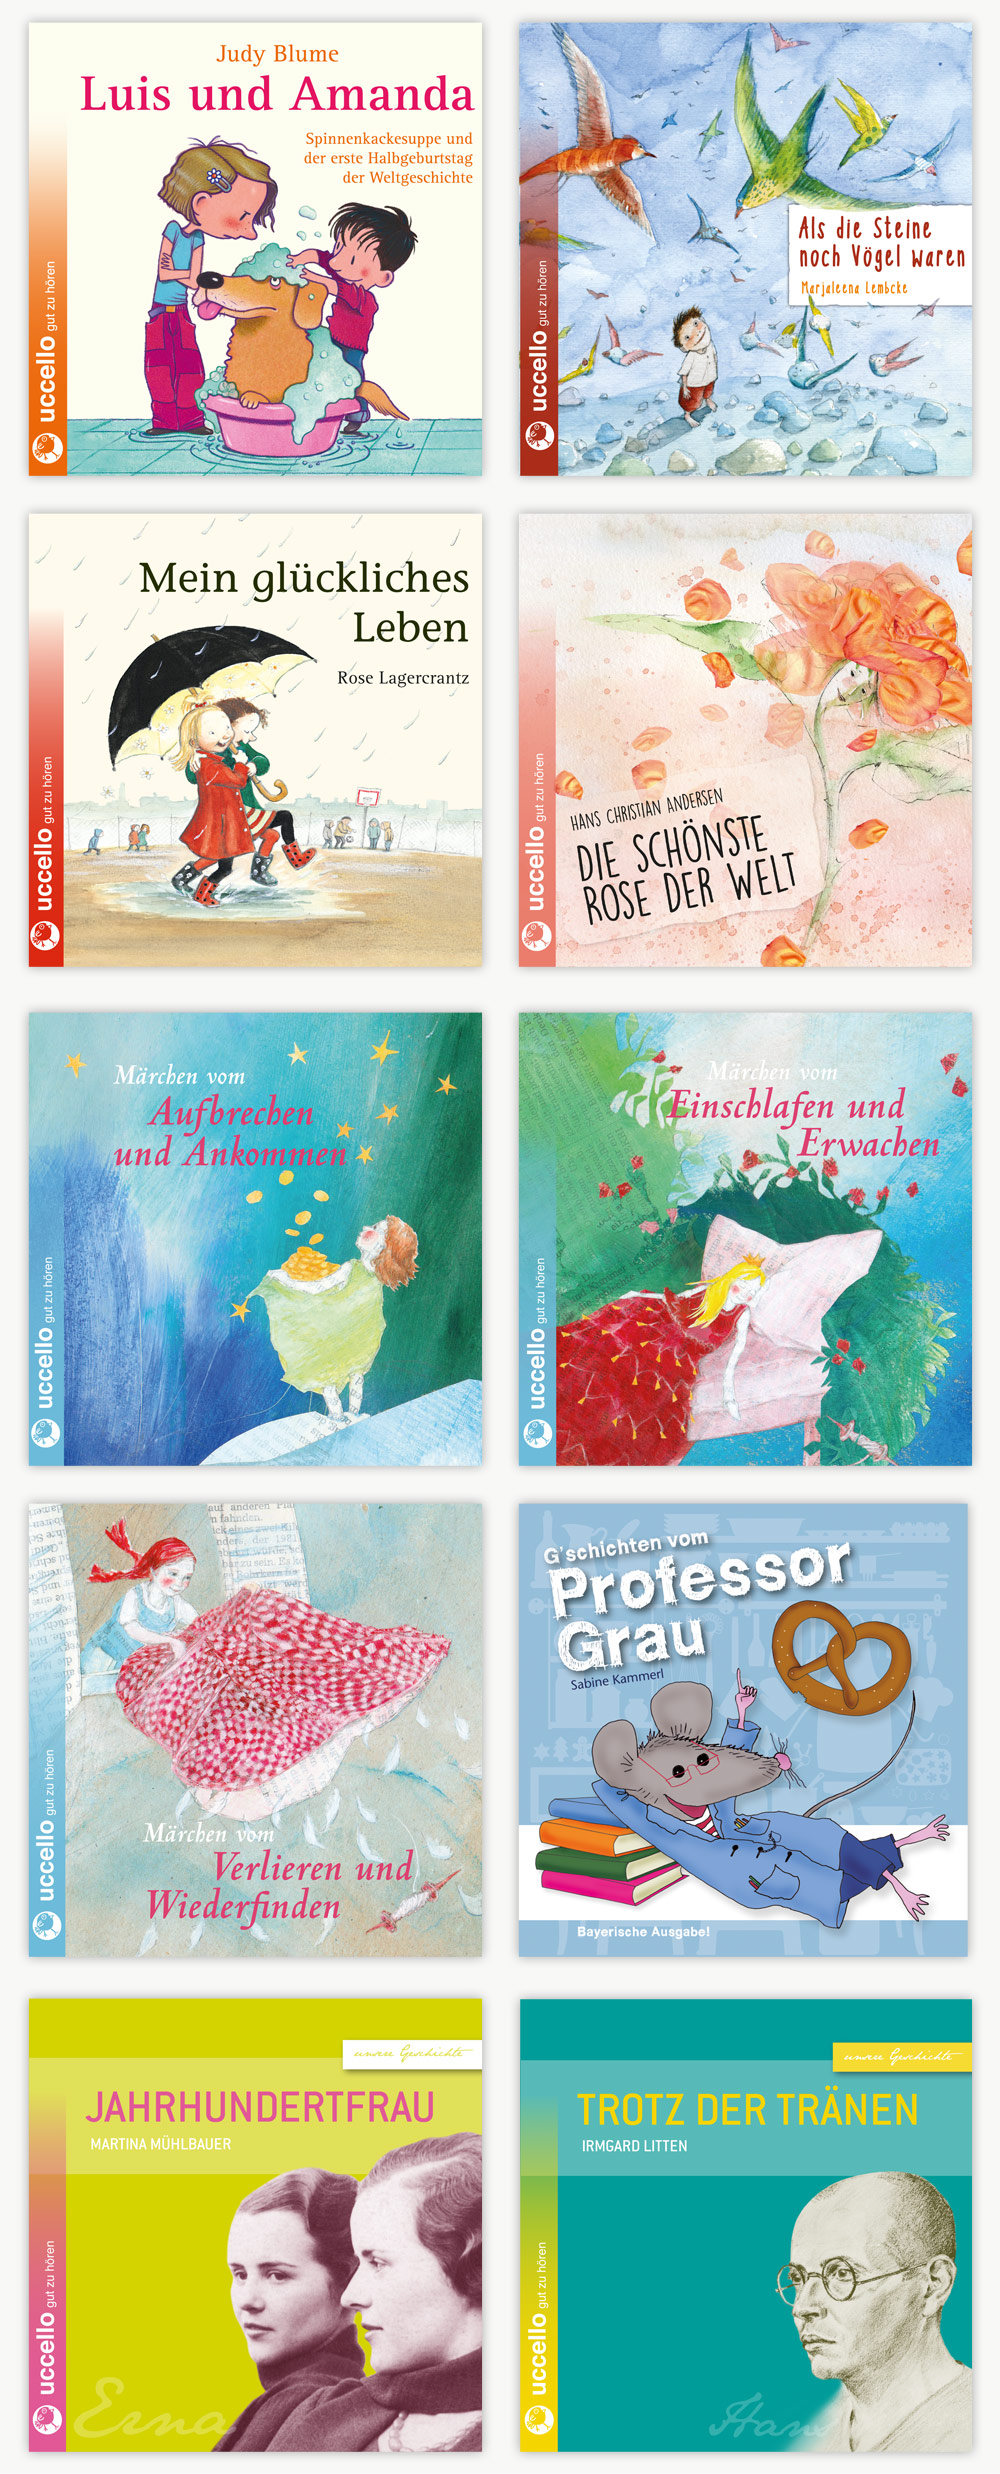 covers_cds_1000_1